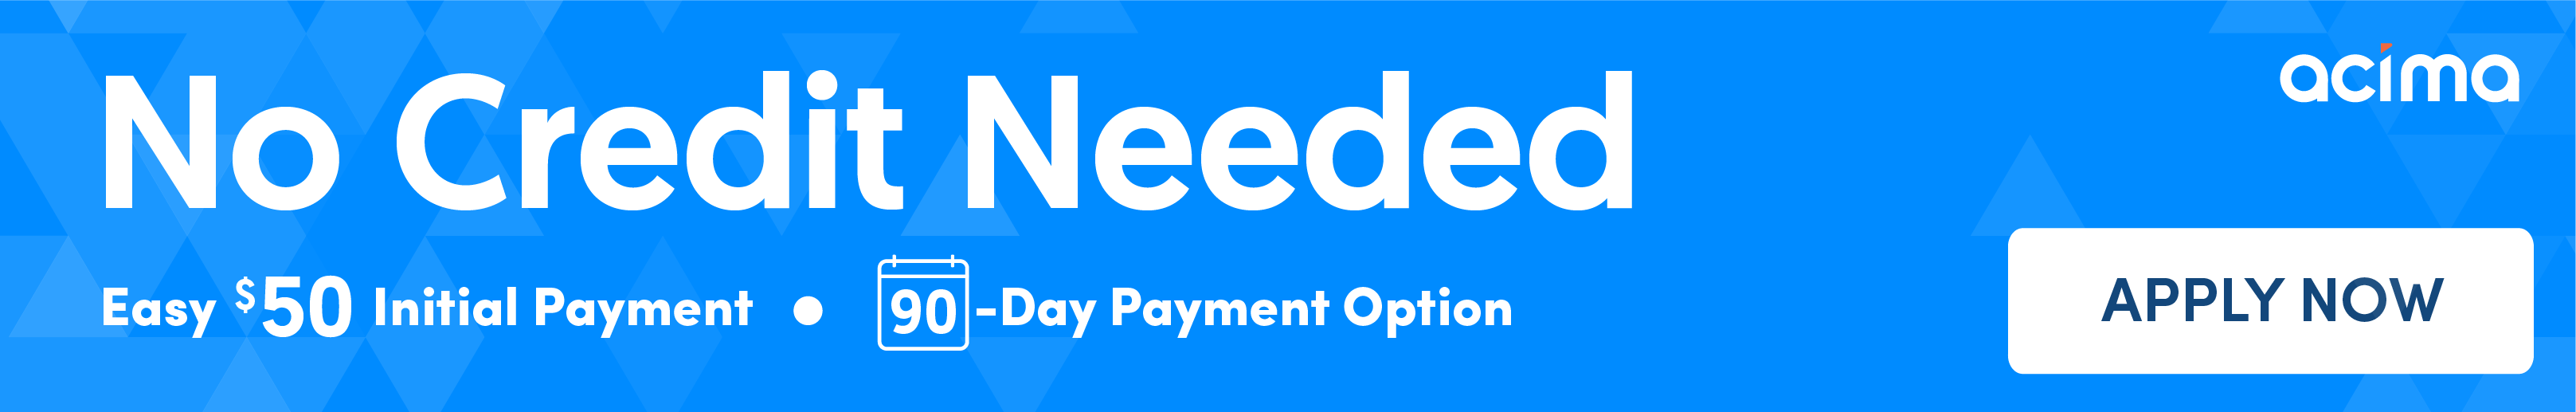 No Credit Needed. Easy $50 Initial Payment - 90 Day Payment Option. Apply Now.